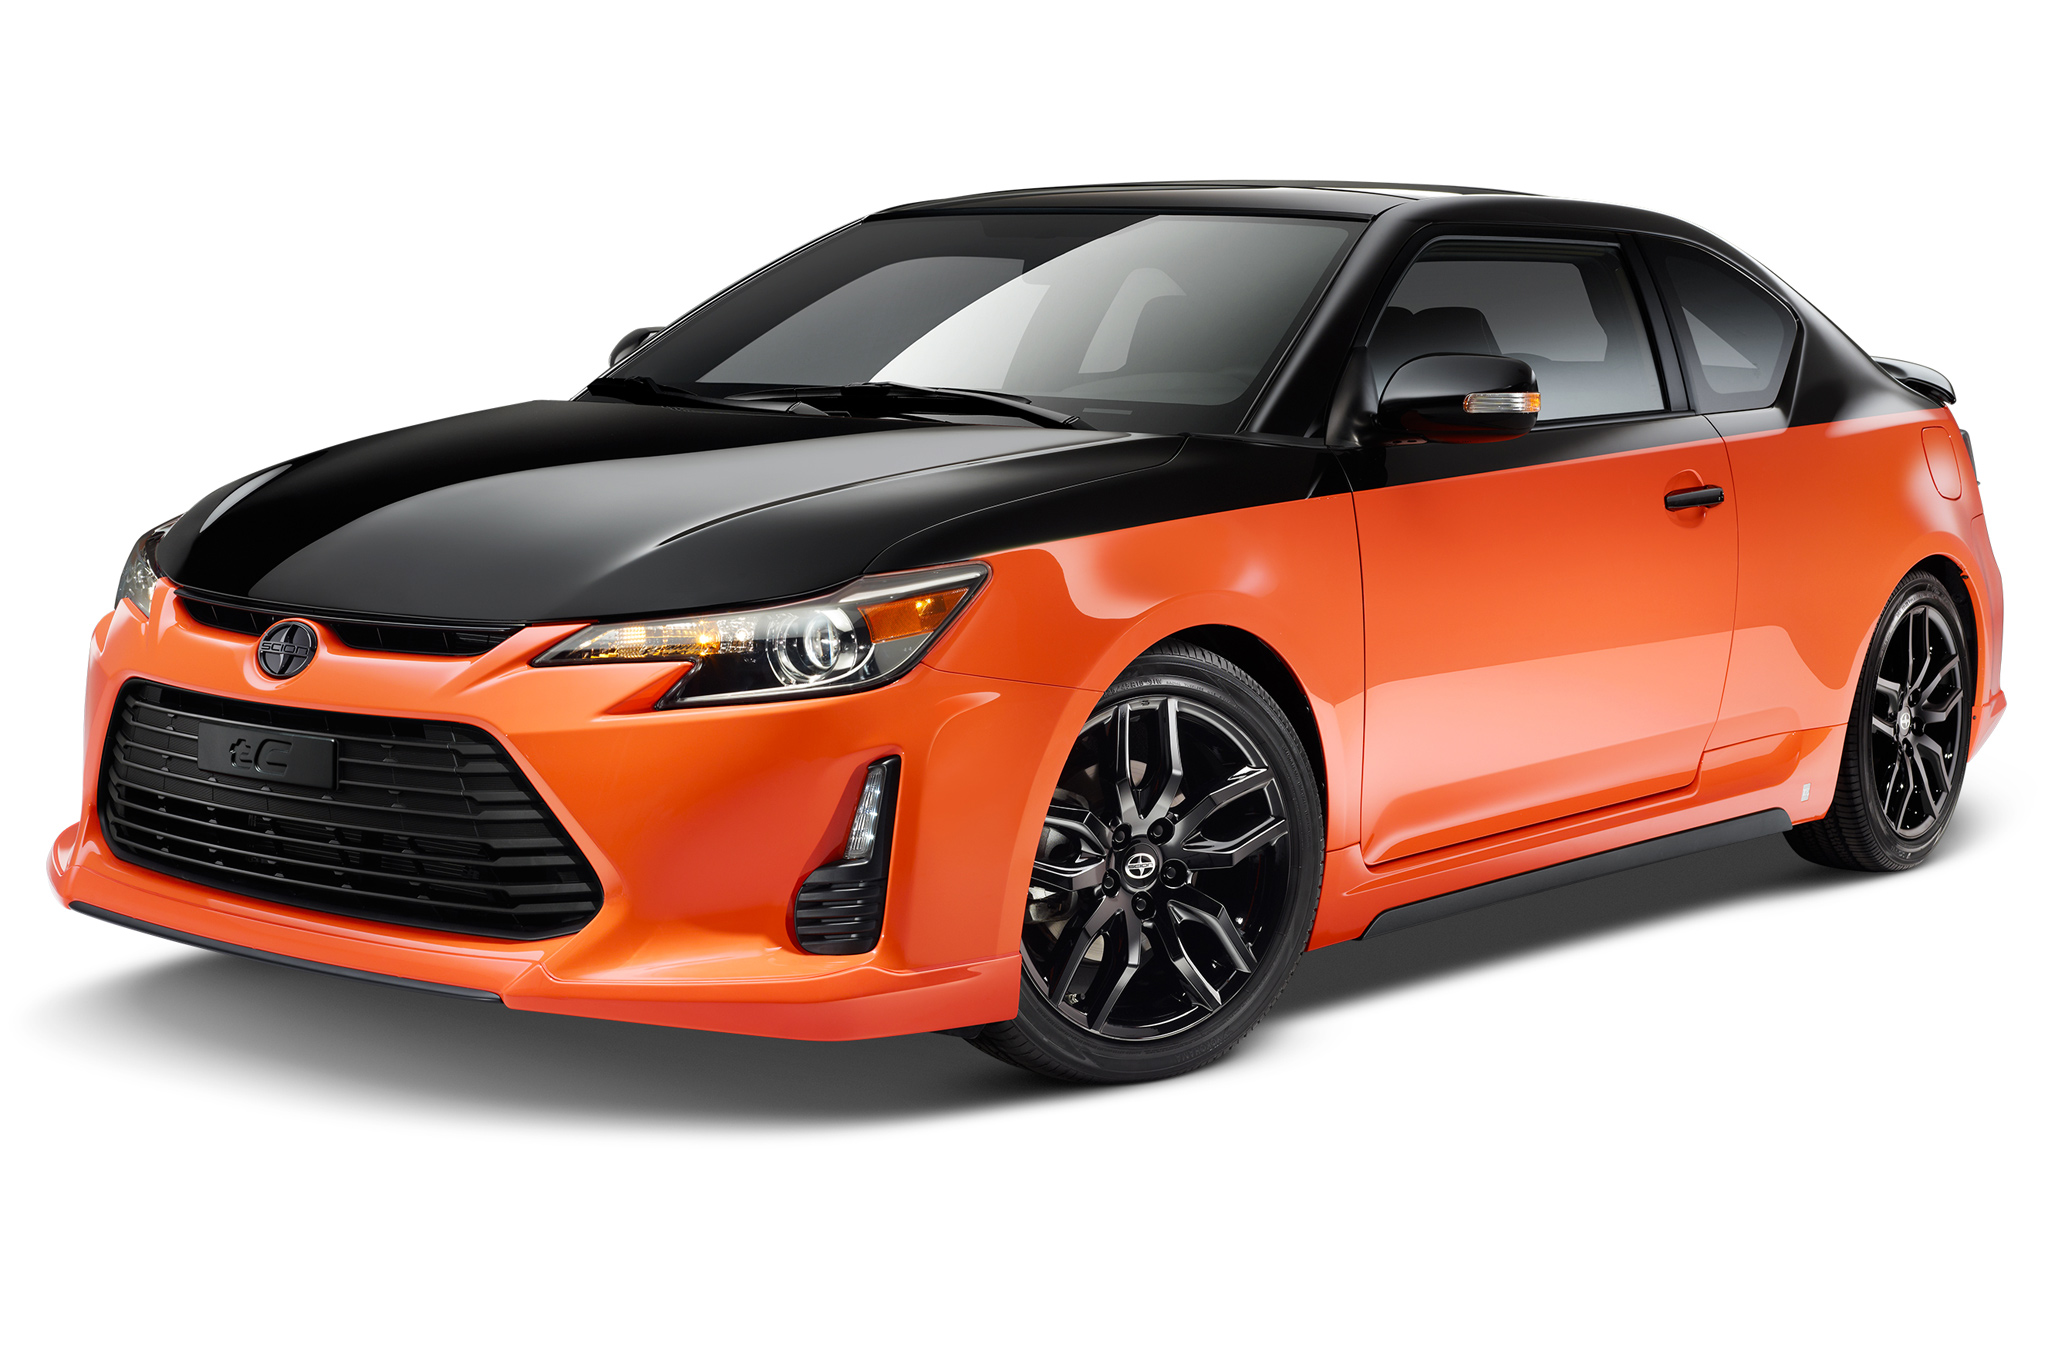 2015 Scion tC Release Series 9.0 Revealed in Orange and Black ...